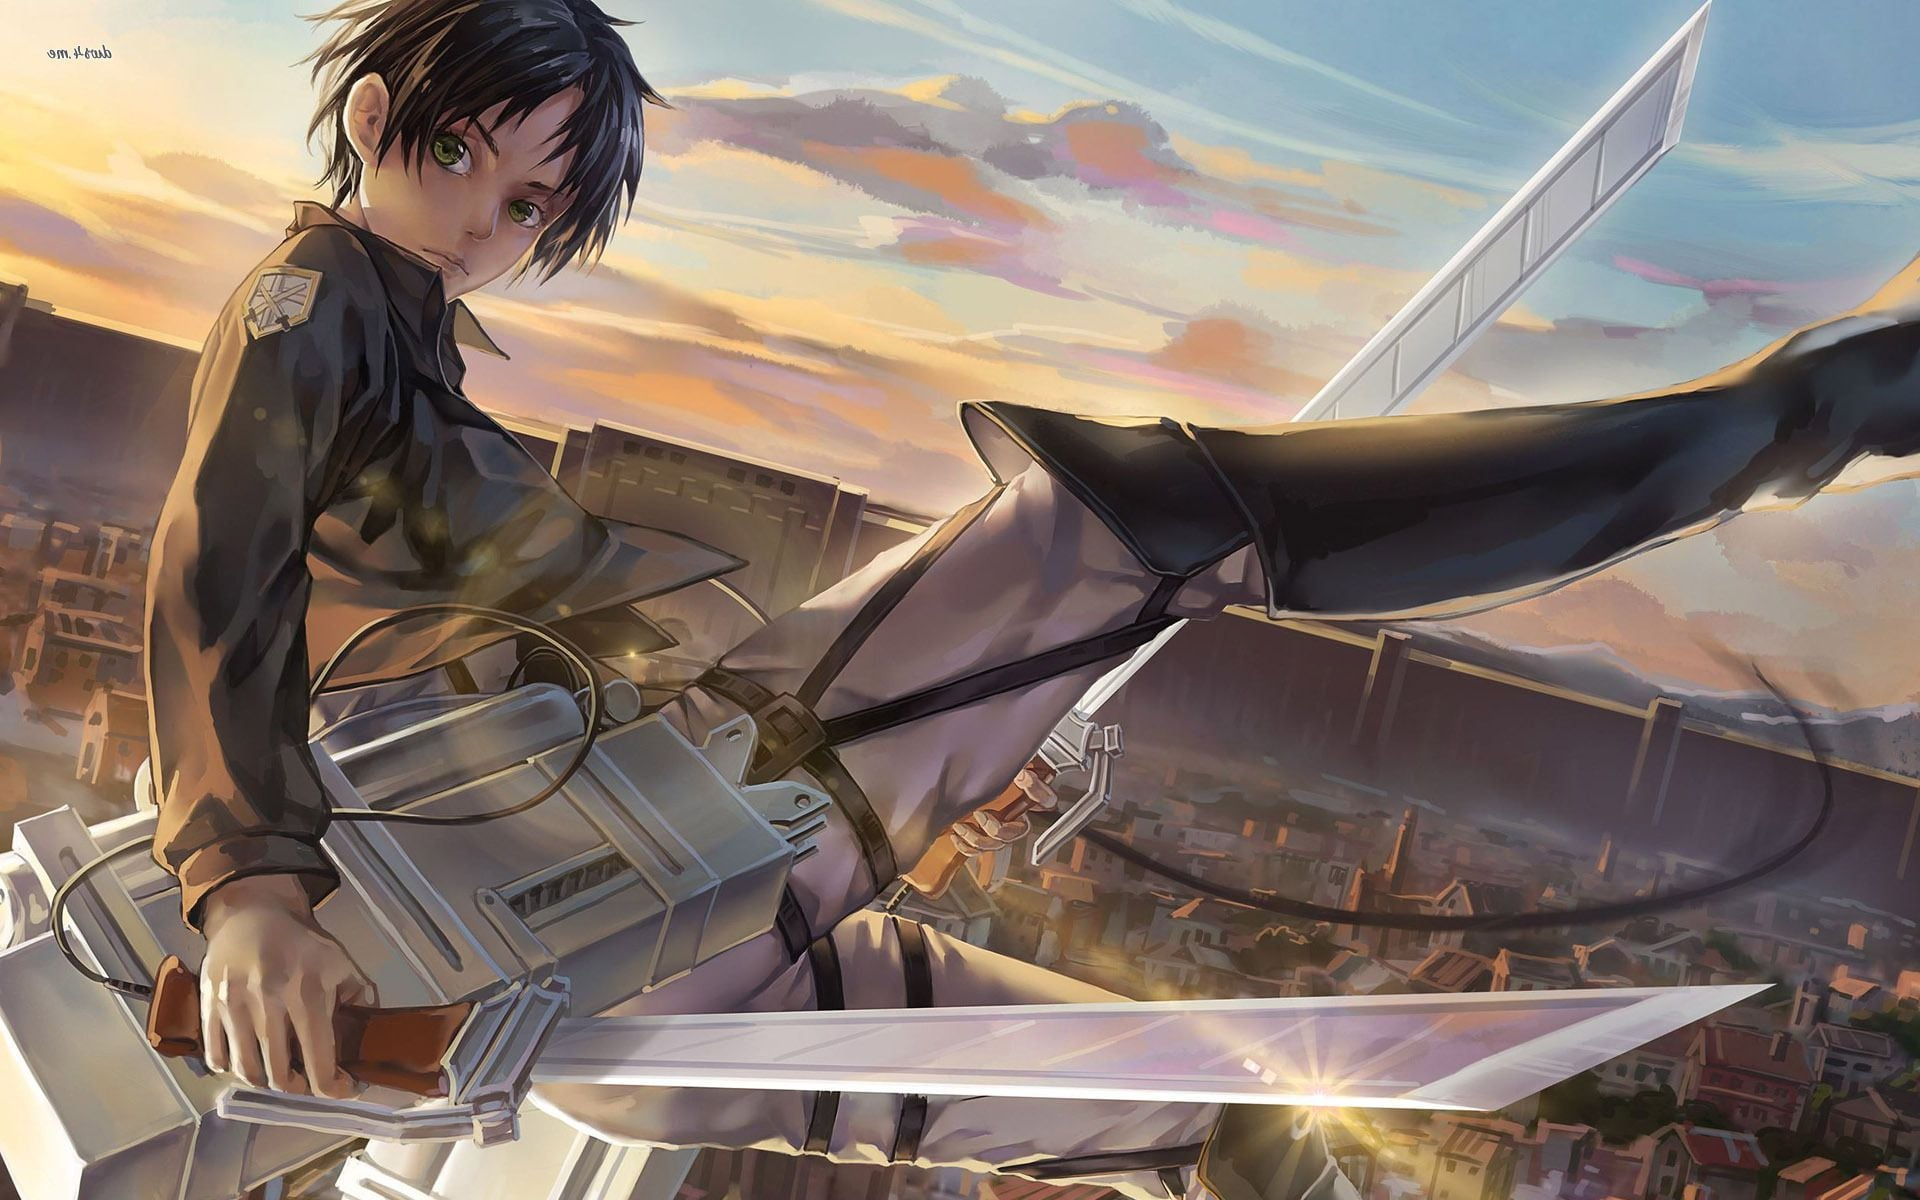 Cute Attack On Titan Eren Yeager Full Hd Image - Eren Yeager - HD Wallpaper